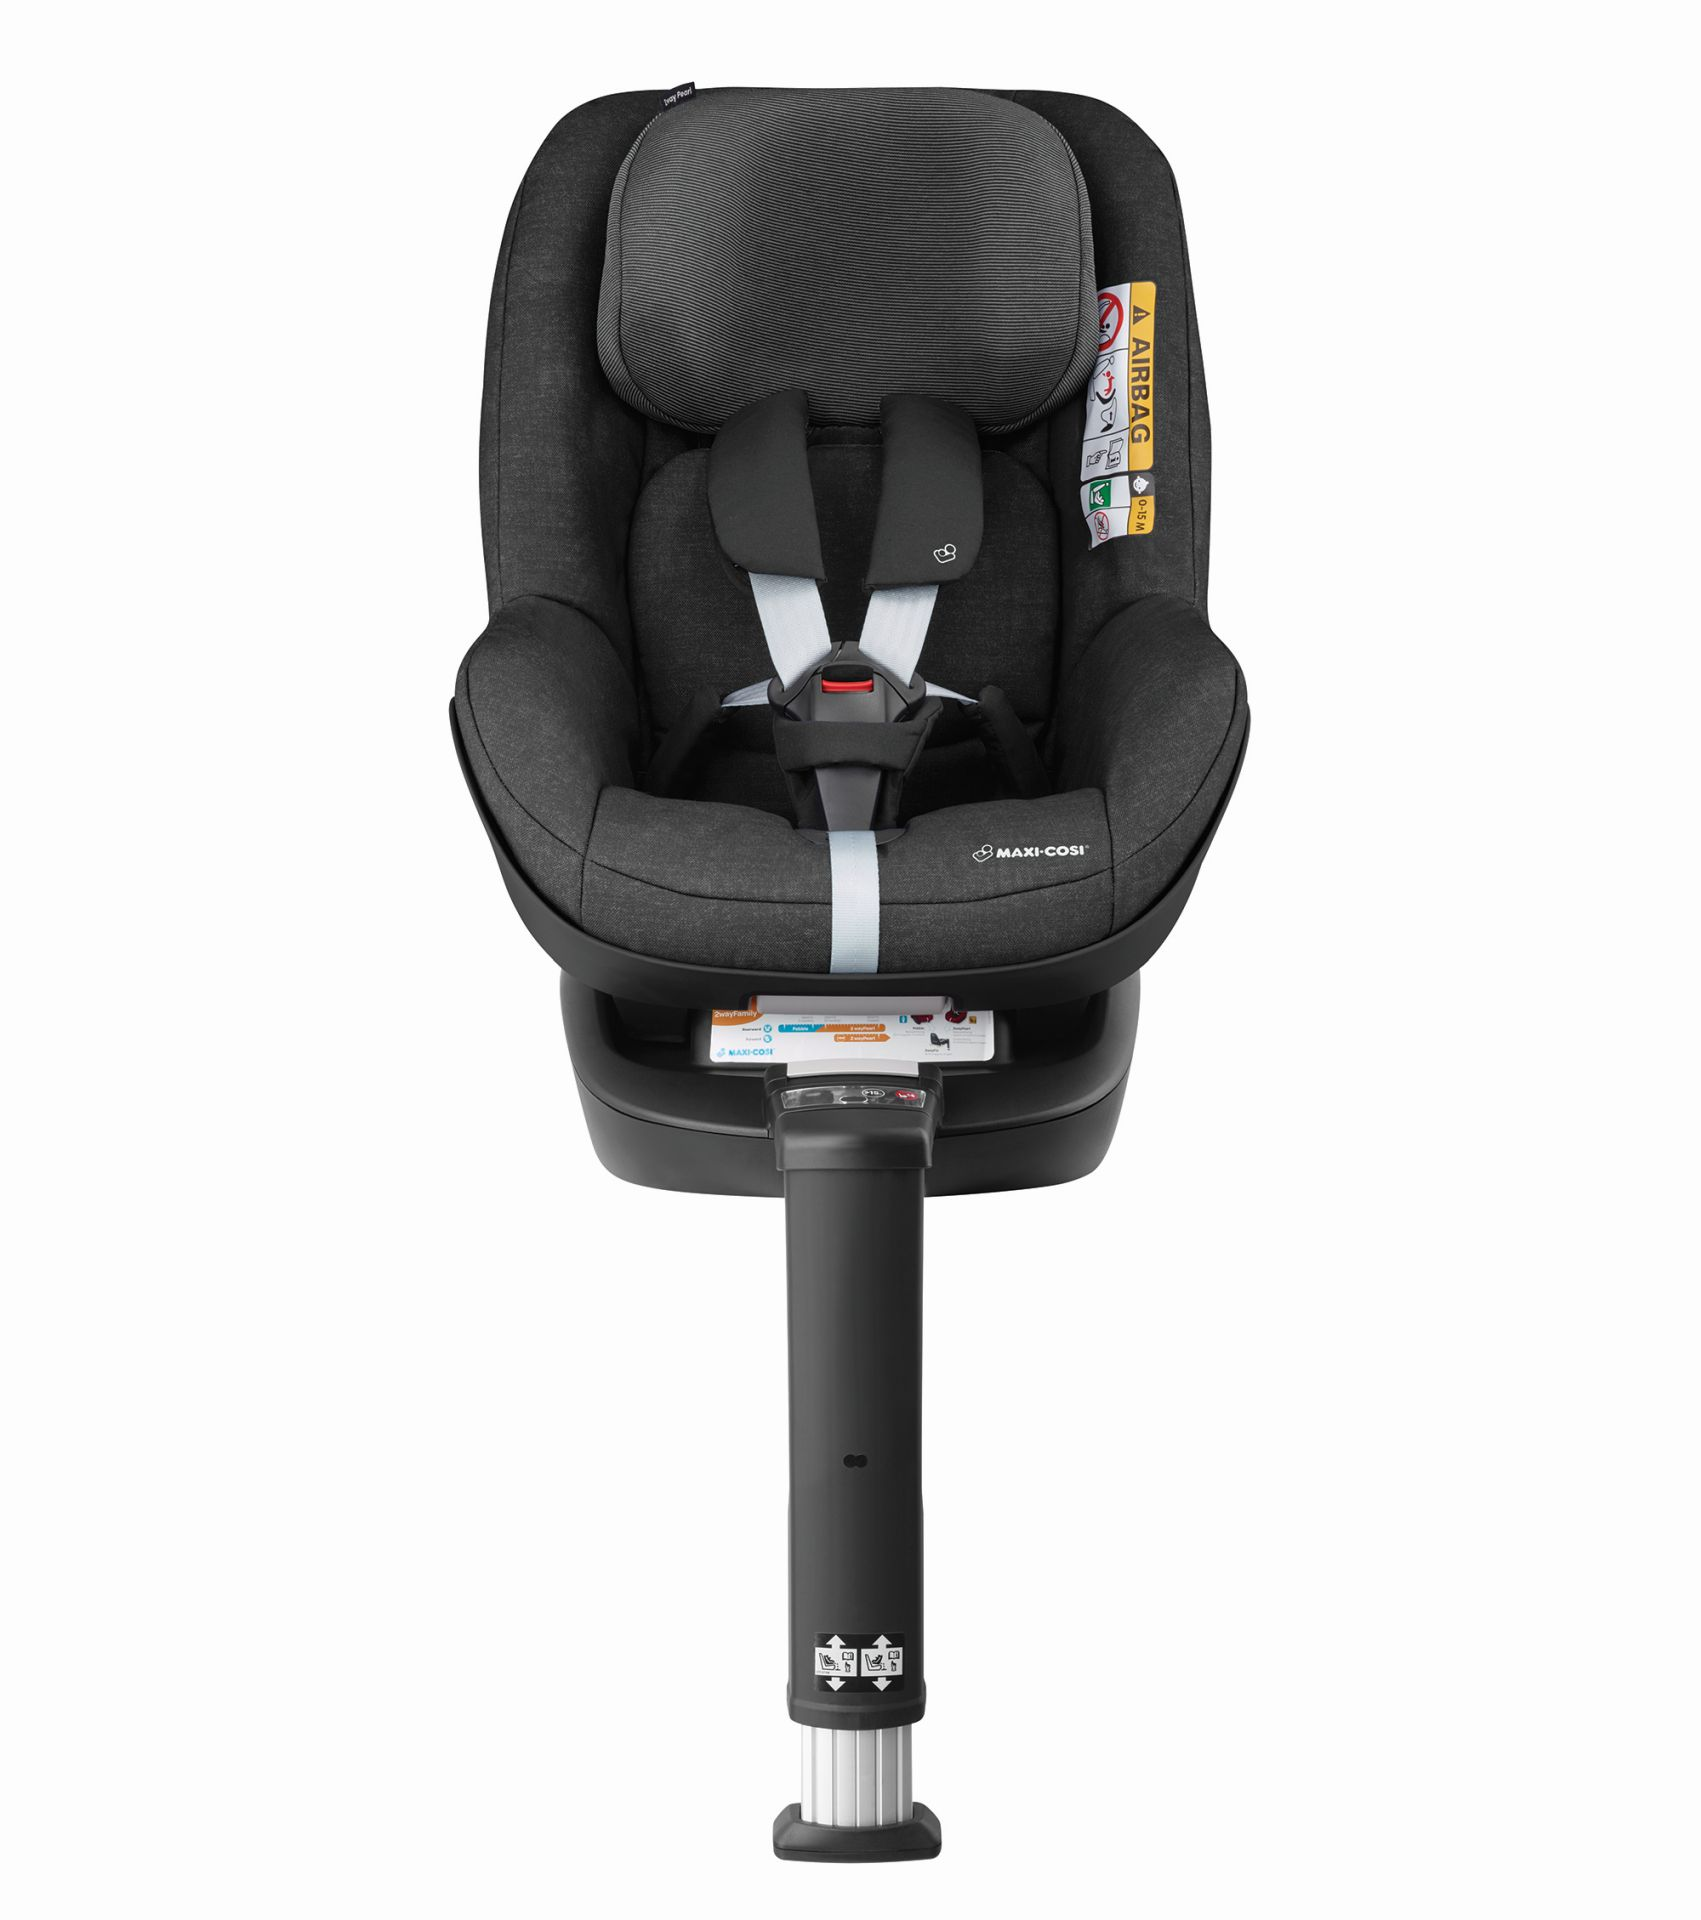 maxi cosi 2 way pack 2018 nomad black buy at kidsroom car seats isofix child car seats. Black Bedroom Furniture Sets. Home Design Ideas